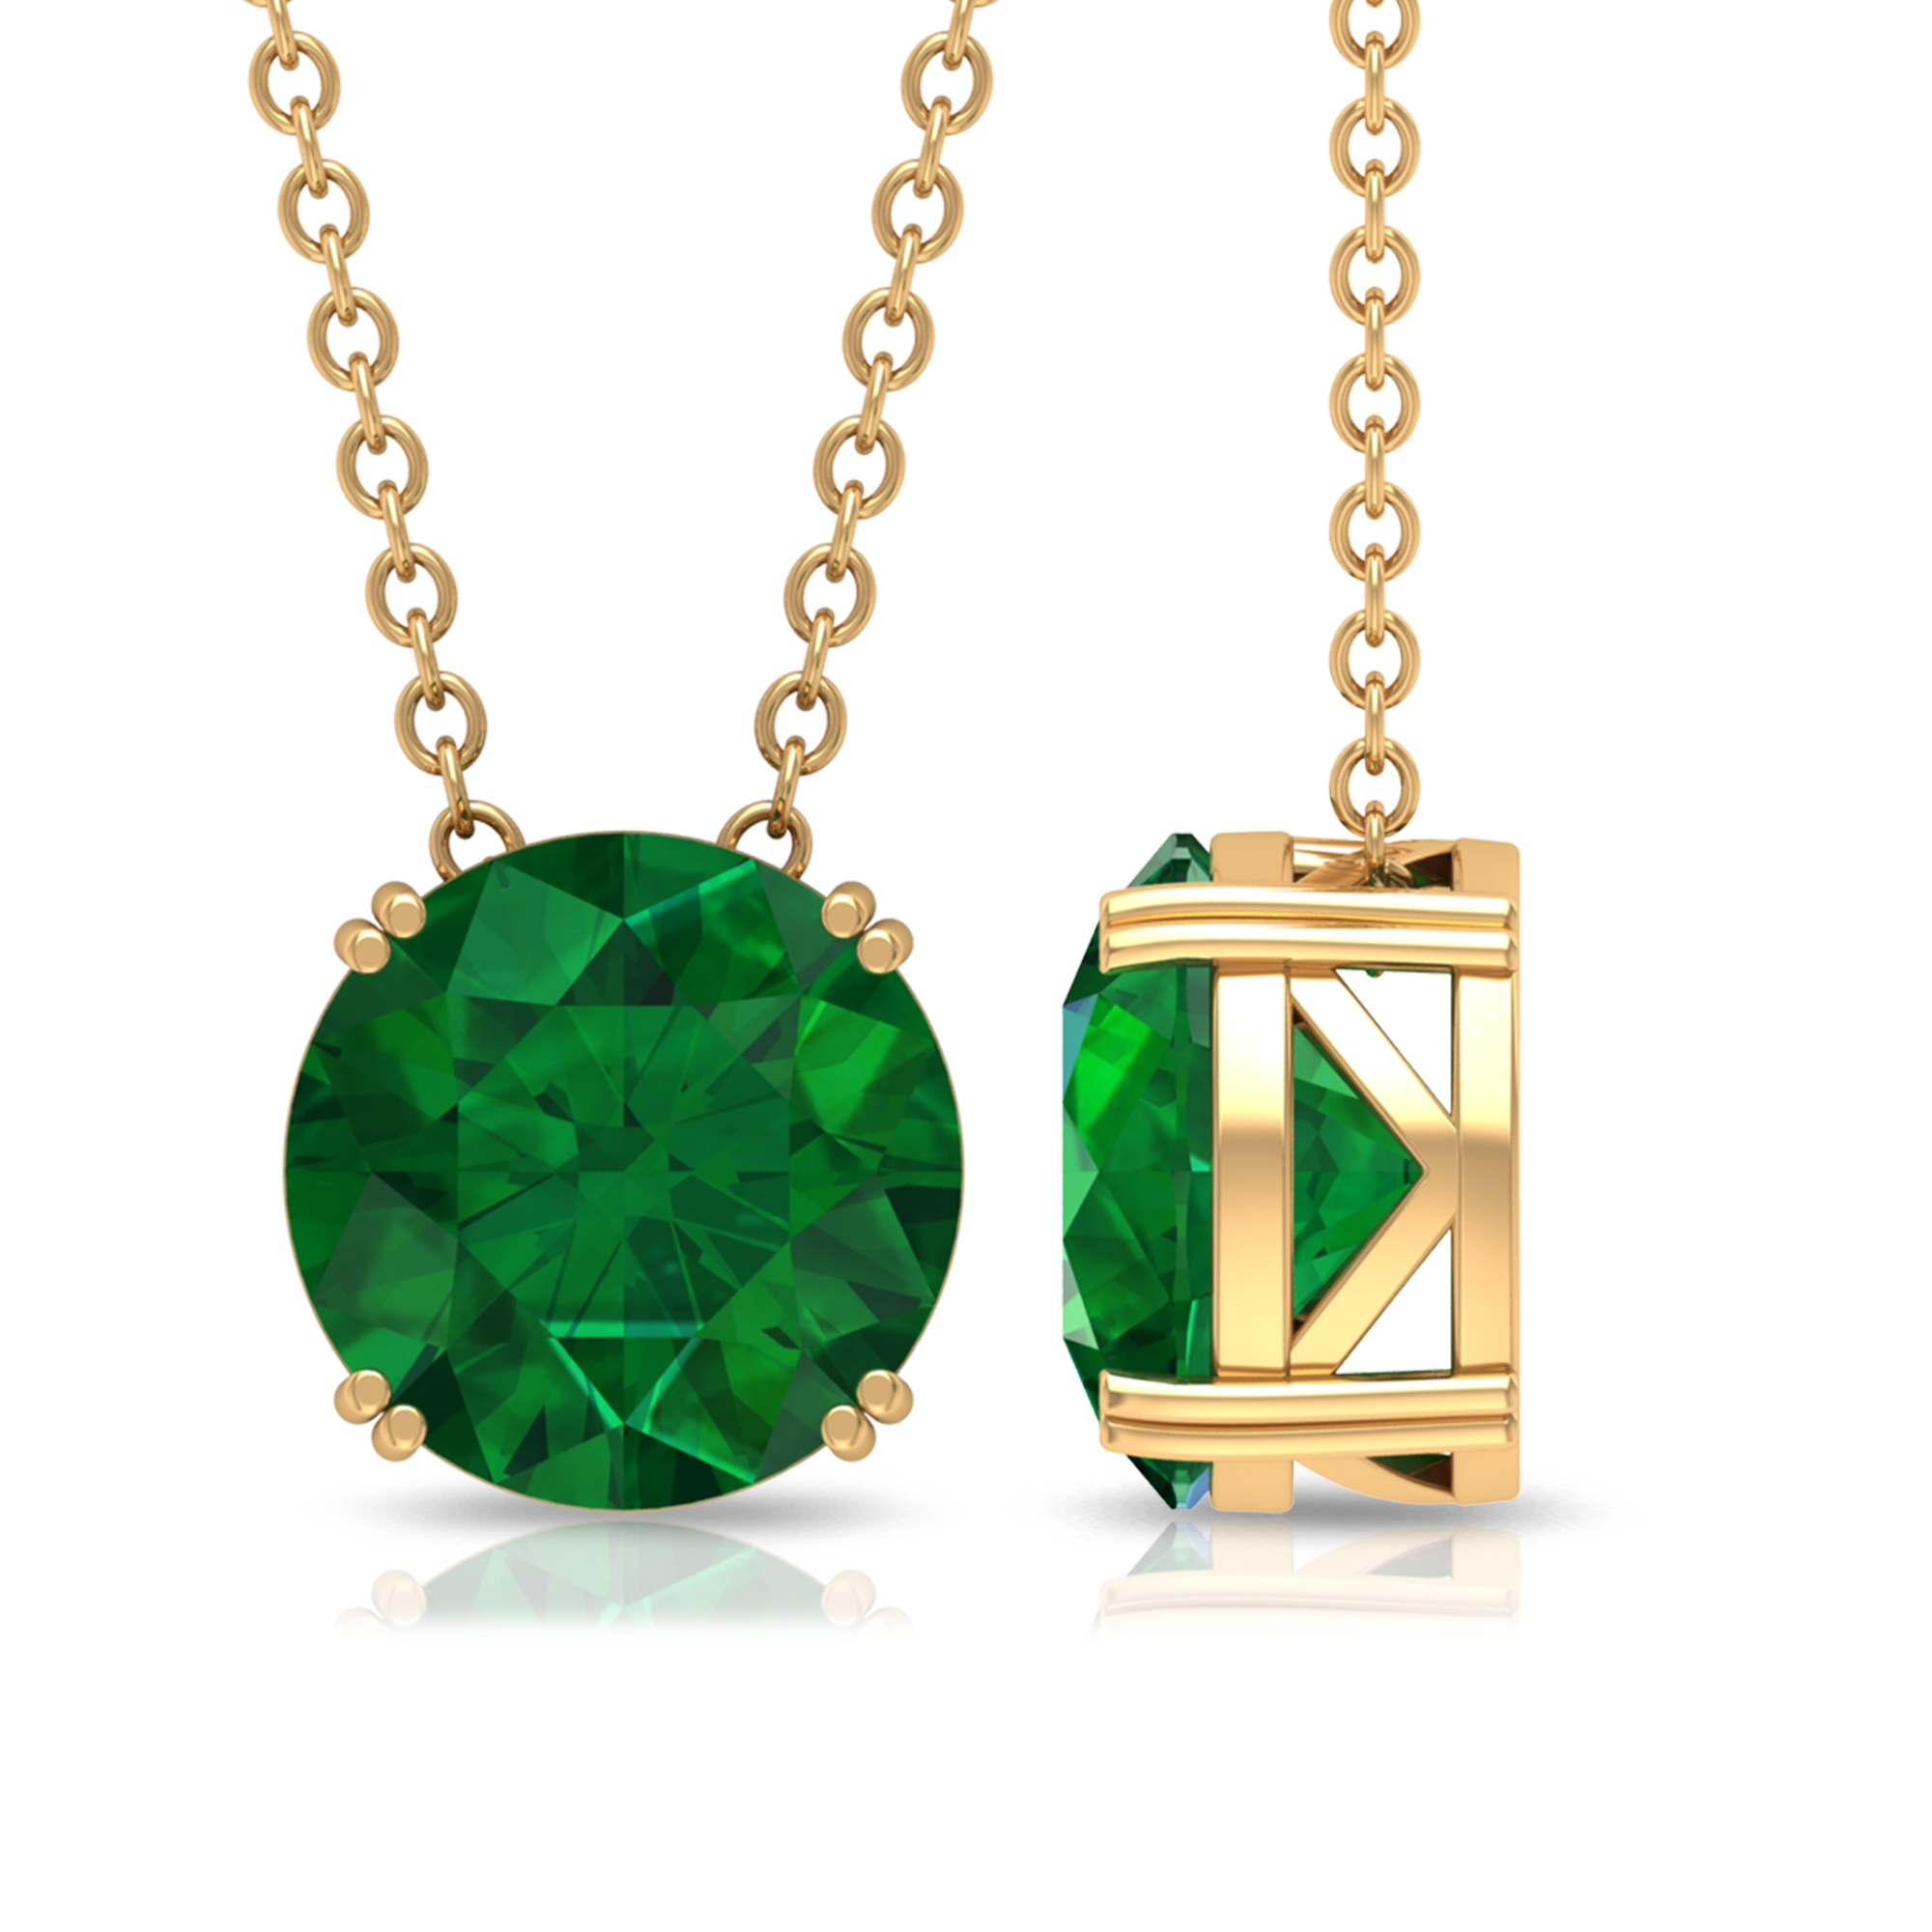 8 MM Round Cut Emerald Solitaire Necklace with Chain in Double Prong Setting